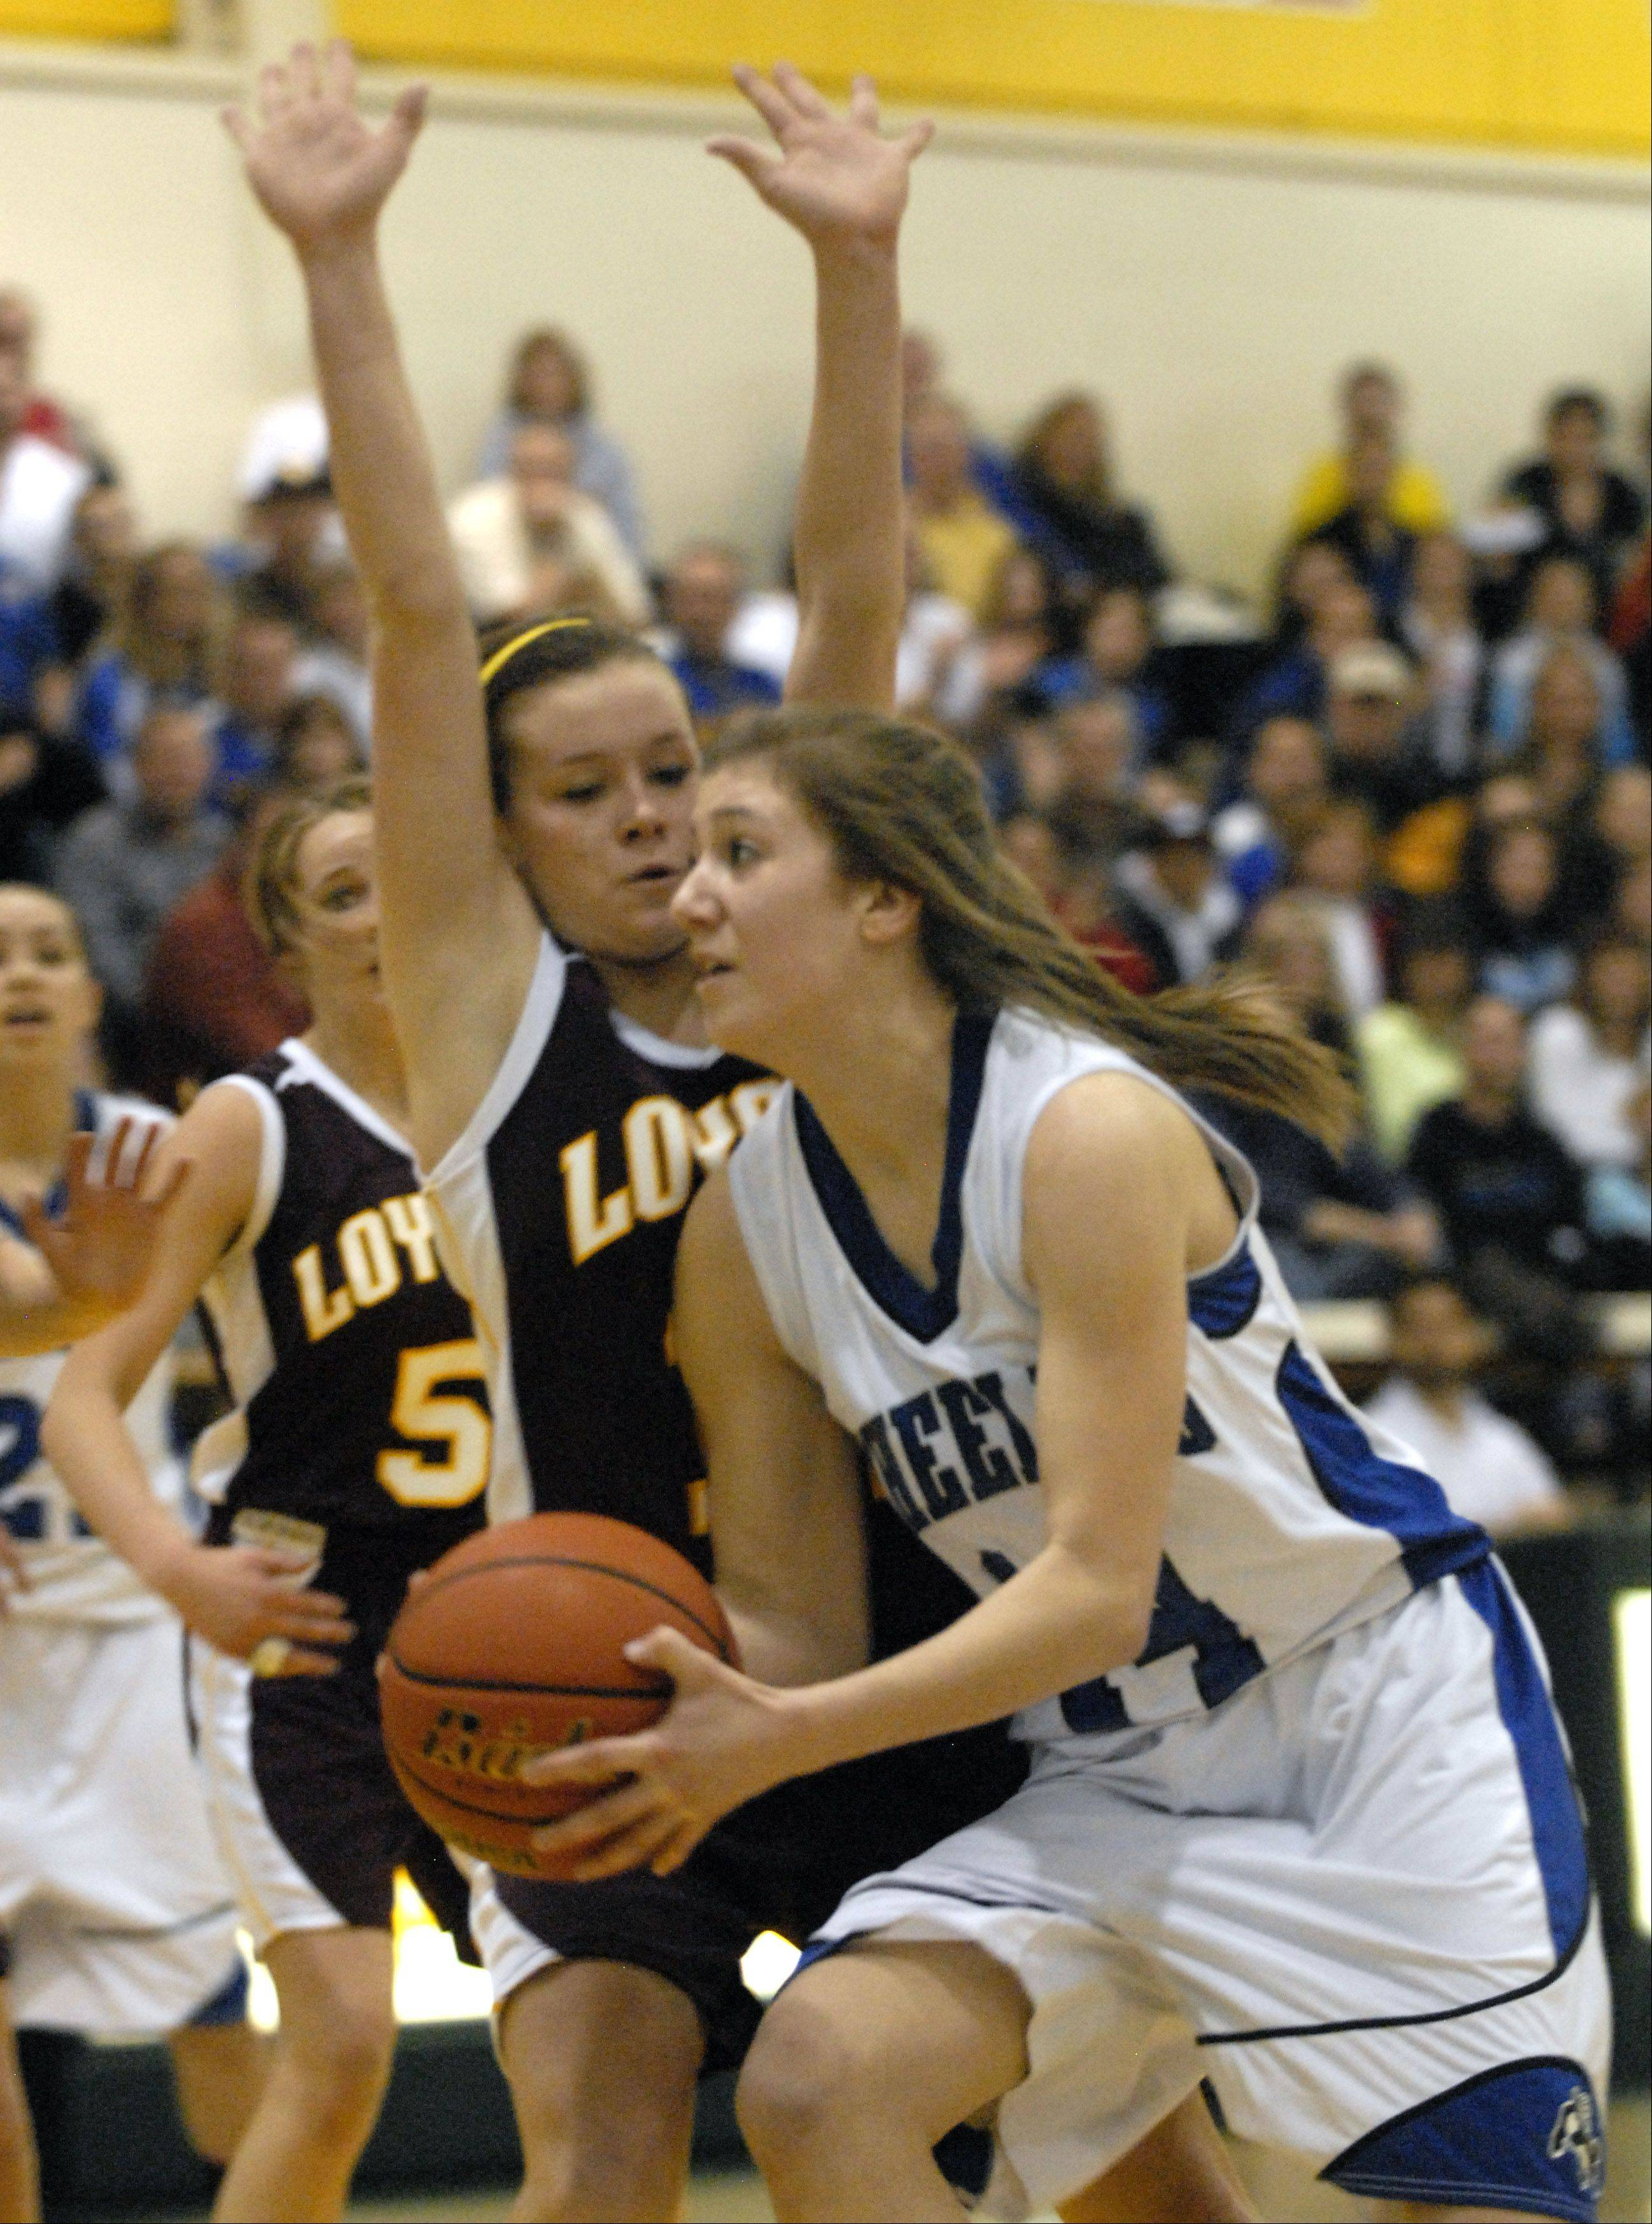 Images from the Wheeling vs. Loyola girls 4A supersectional basketball game at Stevenson high school Monday, February 27th.